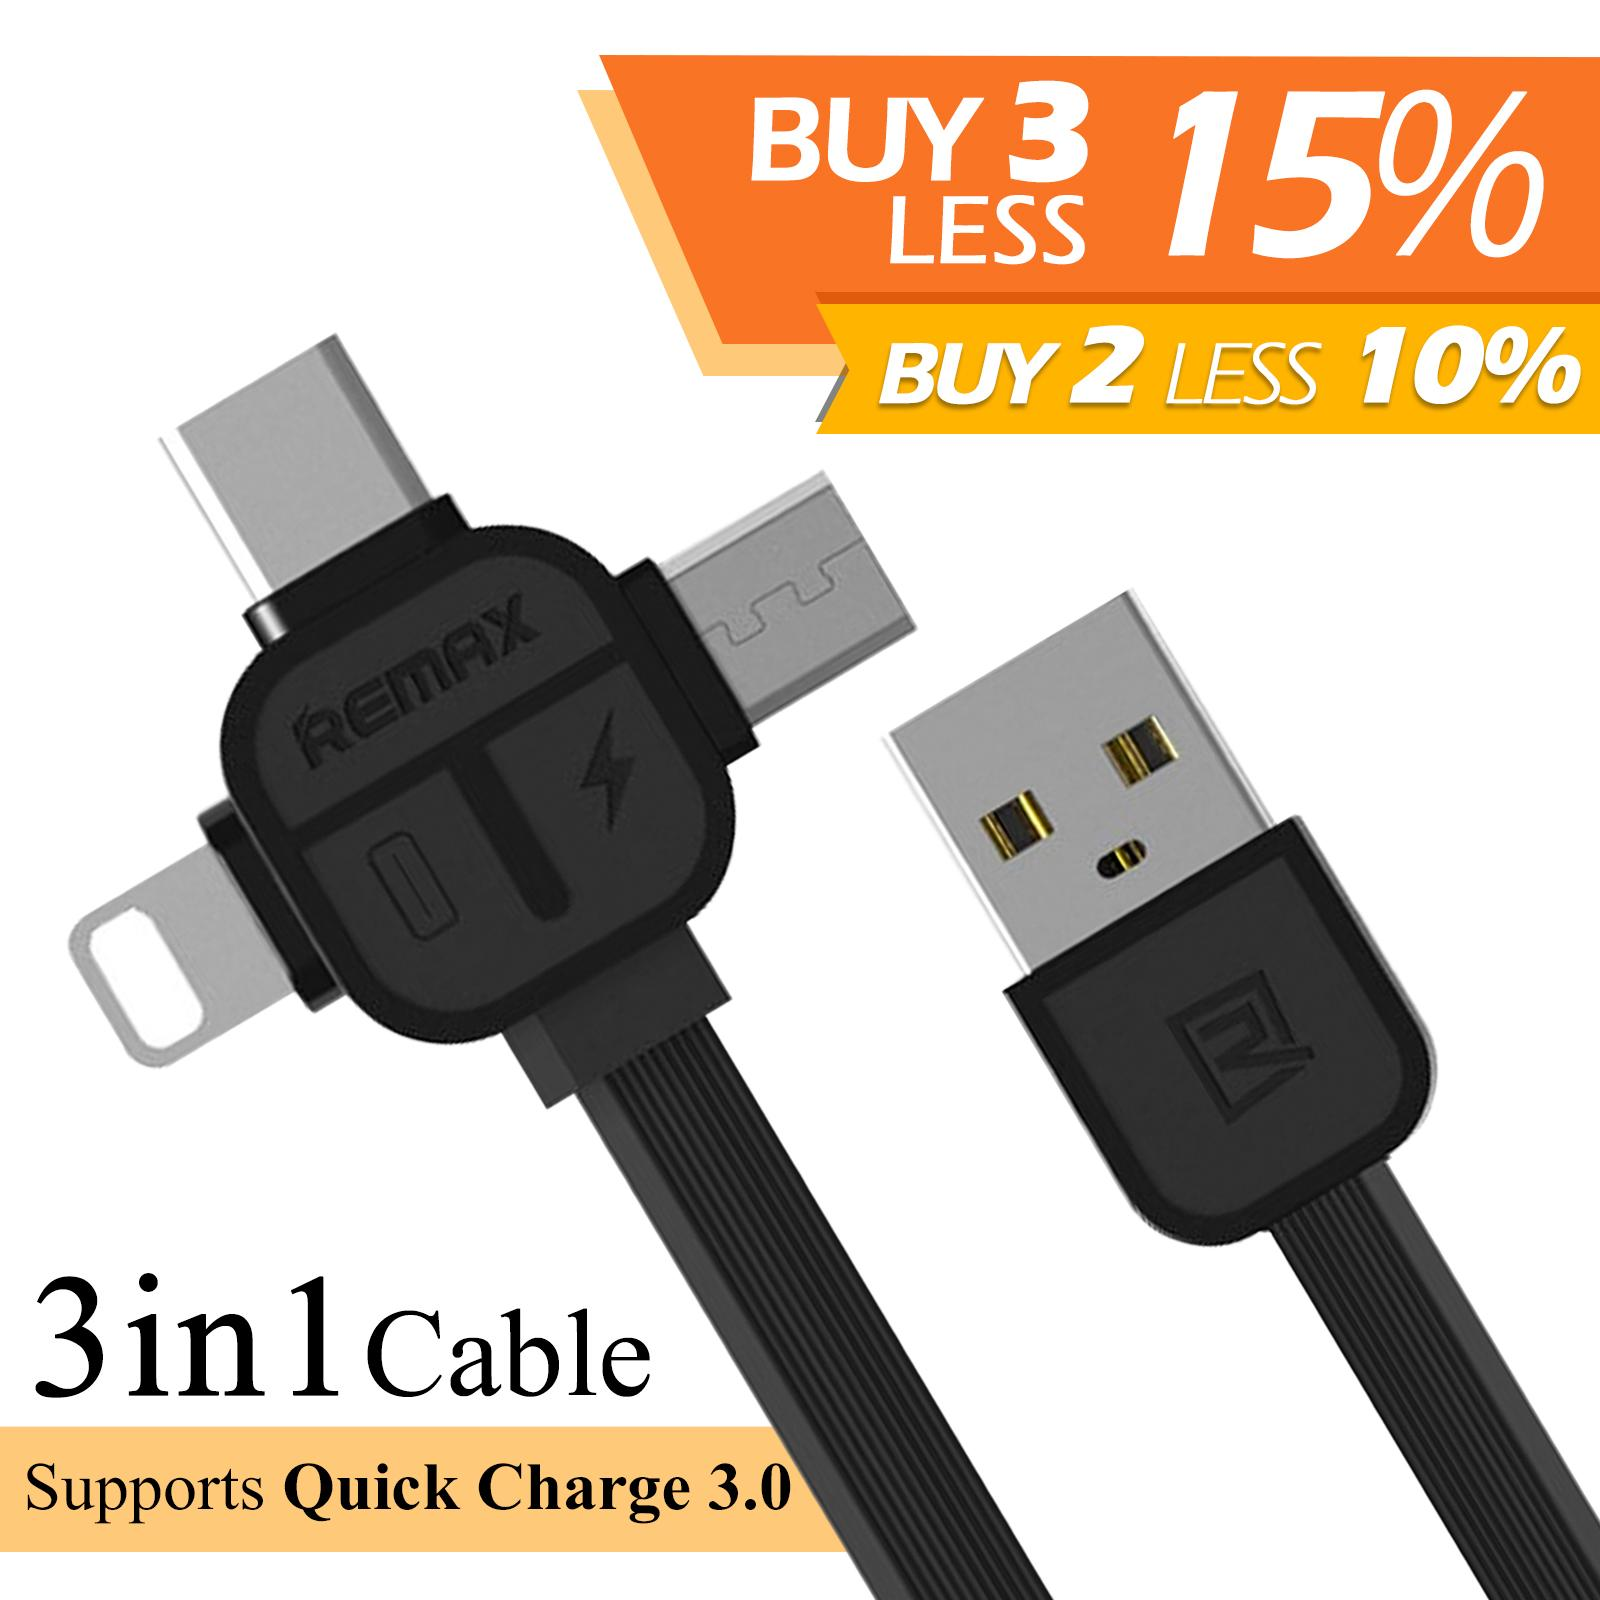 REMAX Lesu Series 3 in 1 USB 2.1A Cable with Micro USB + Type-